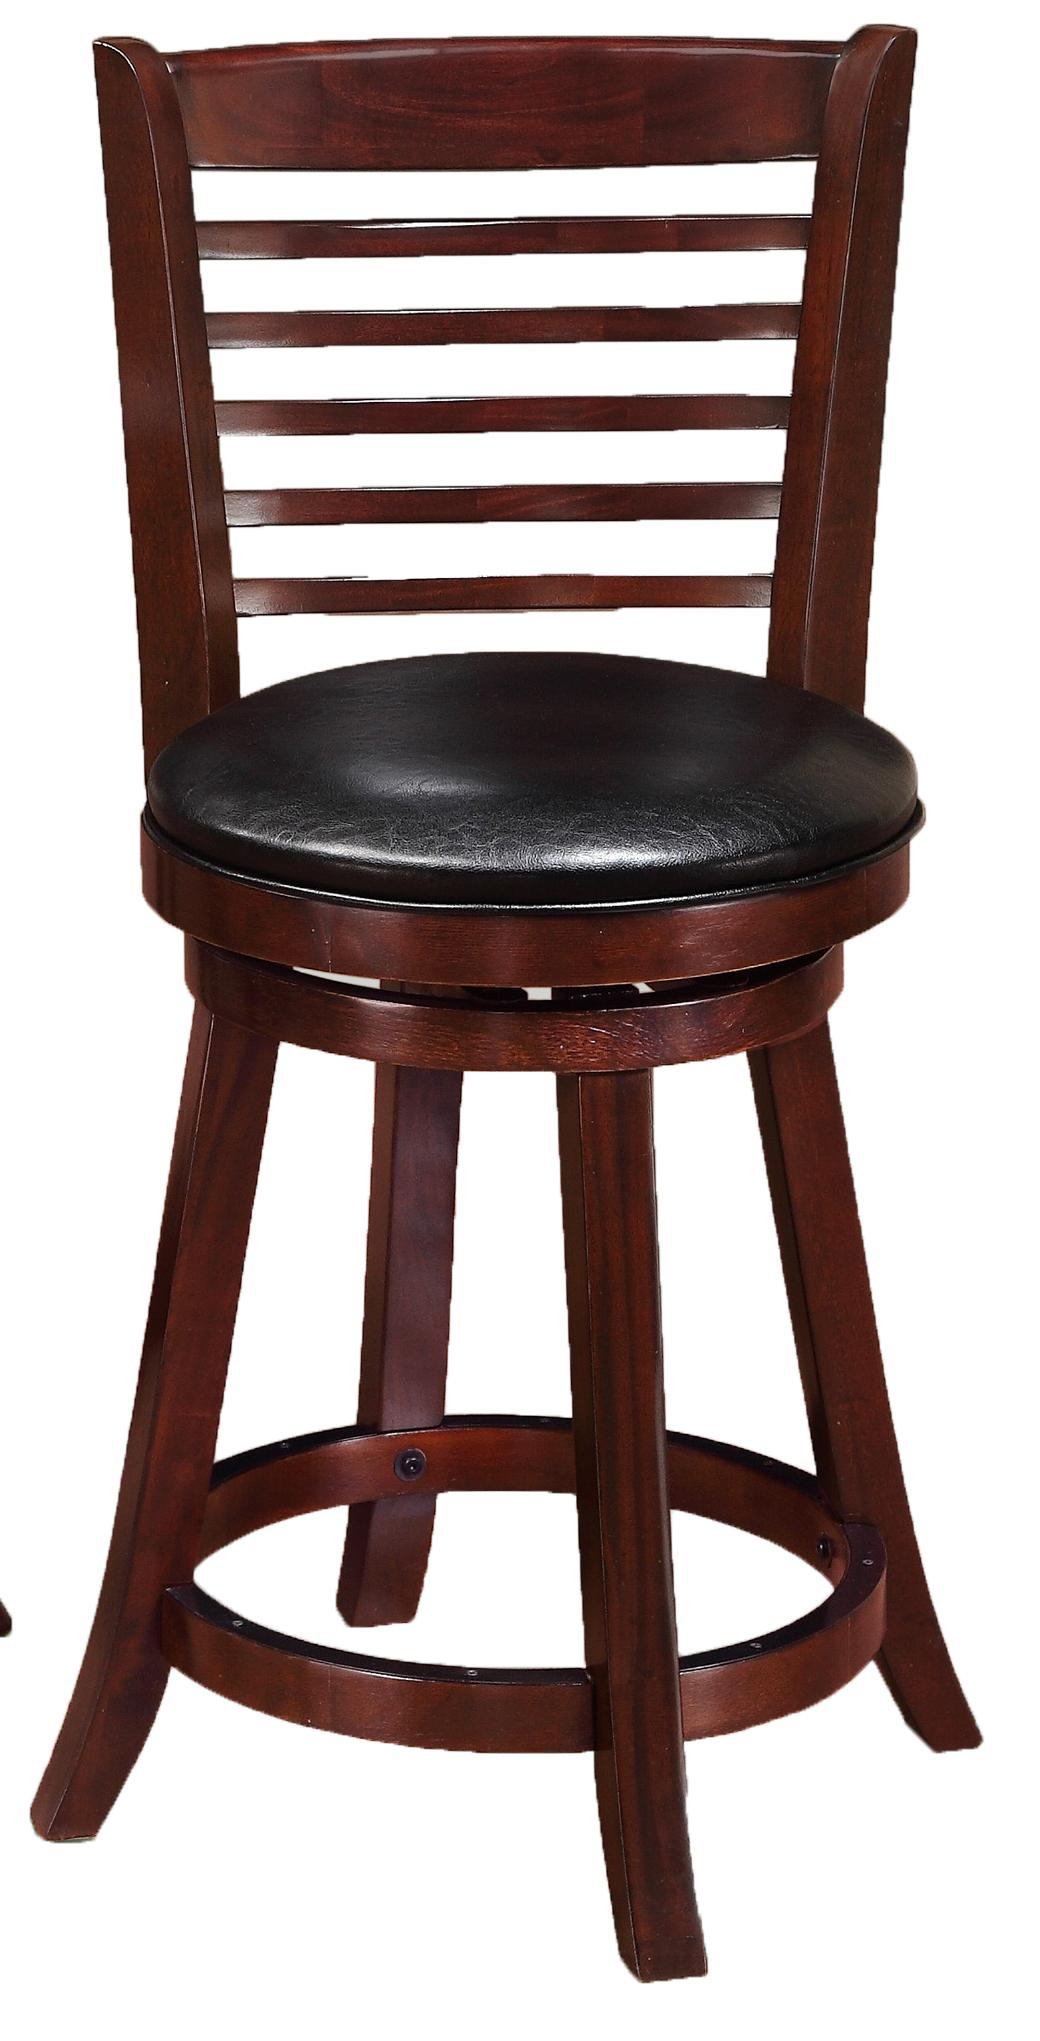 Crown Mark Bar Stools Low Swivel Chair - Item Number: 2796C-24